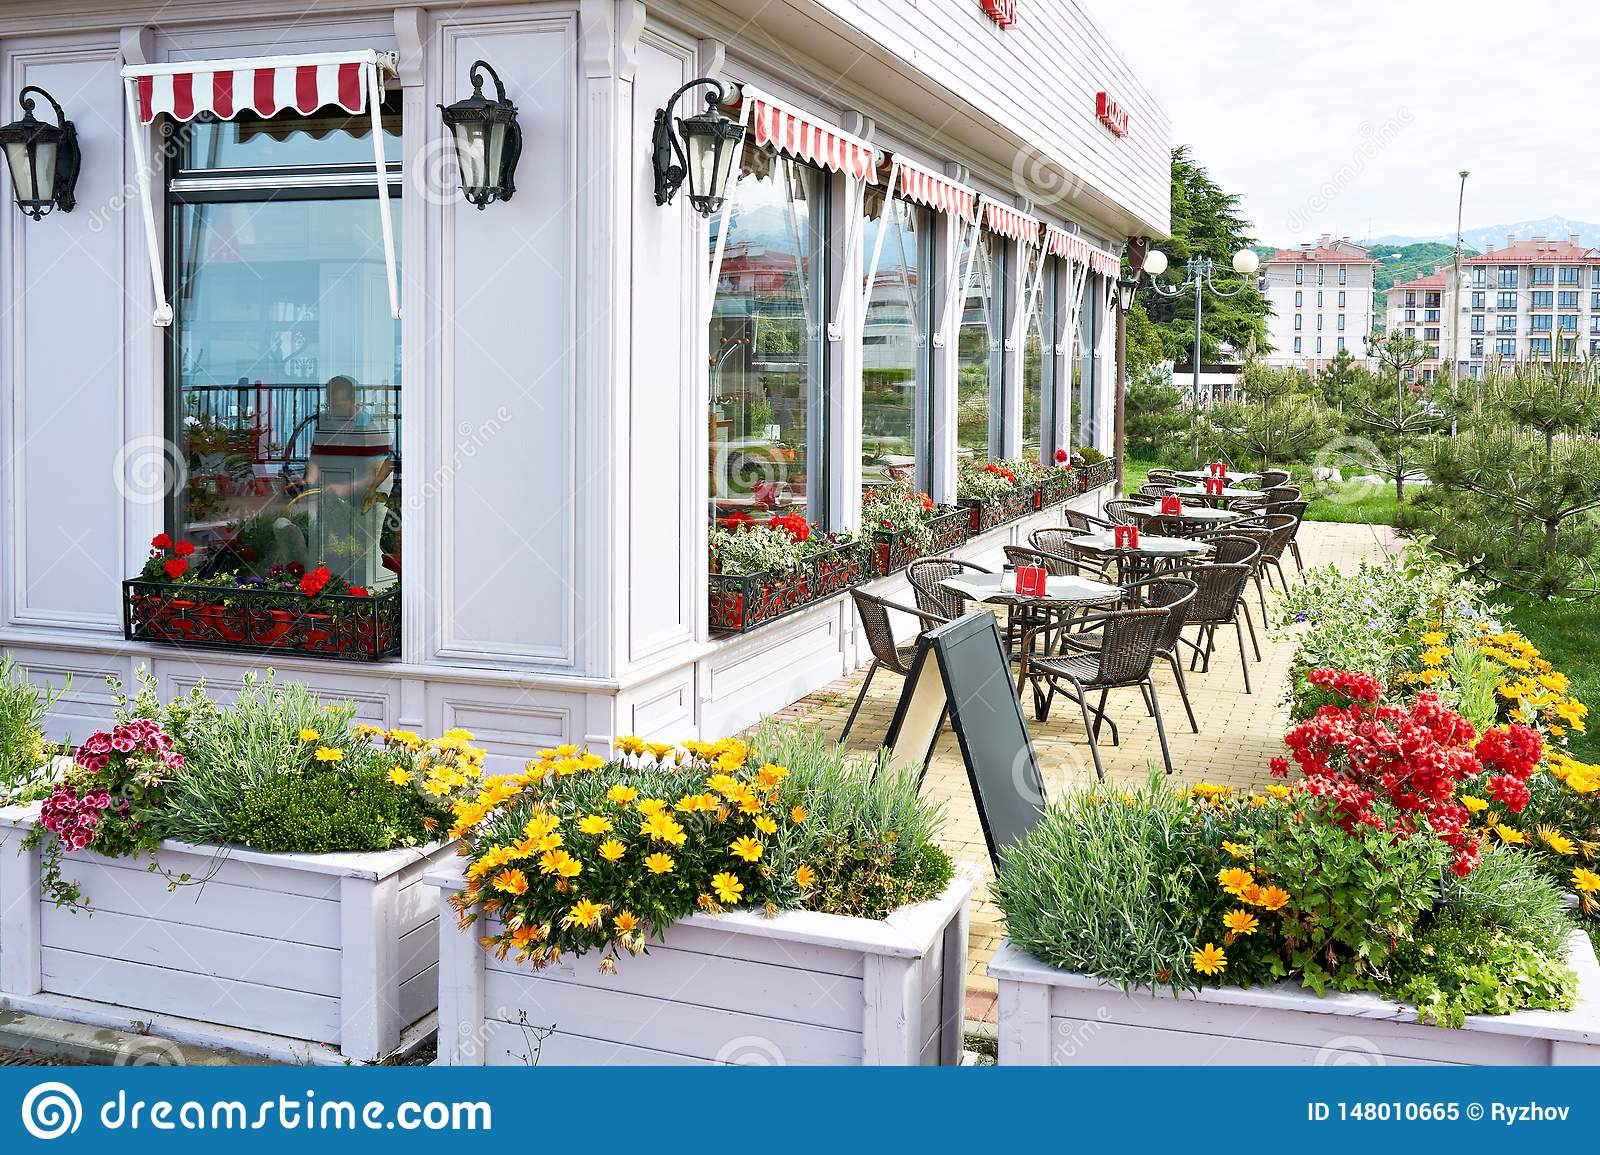 Flowers and tables of outdoor summer cafe